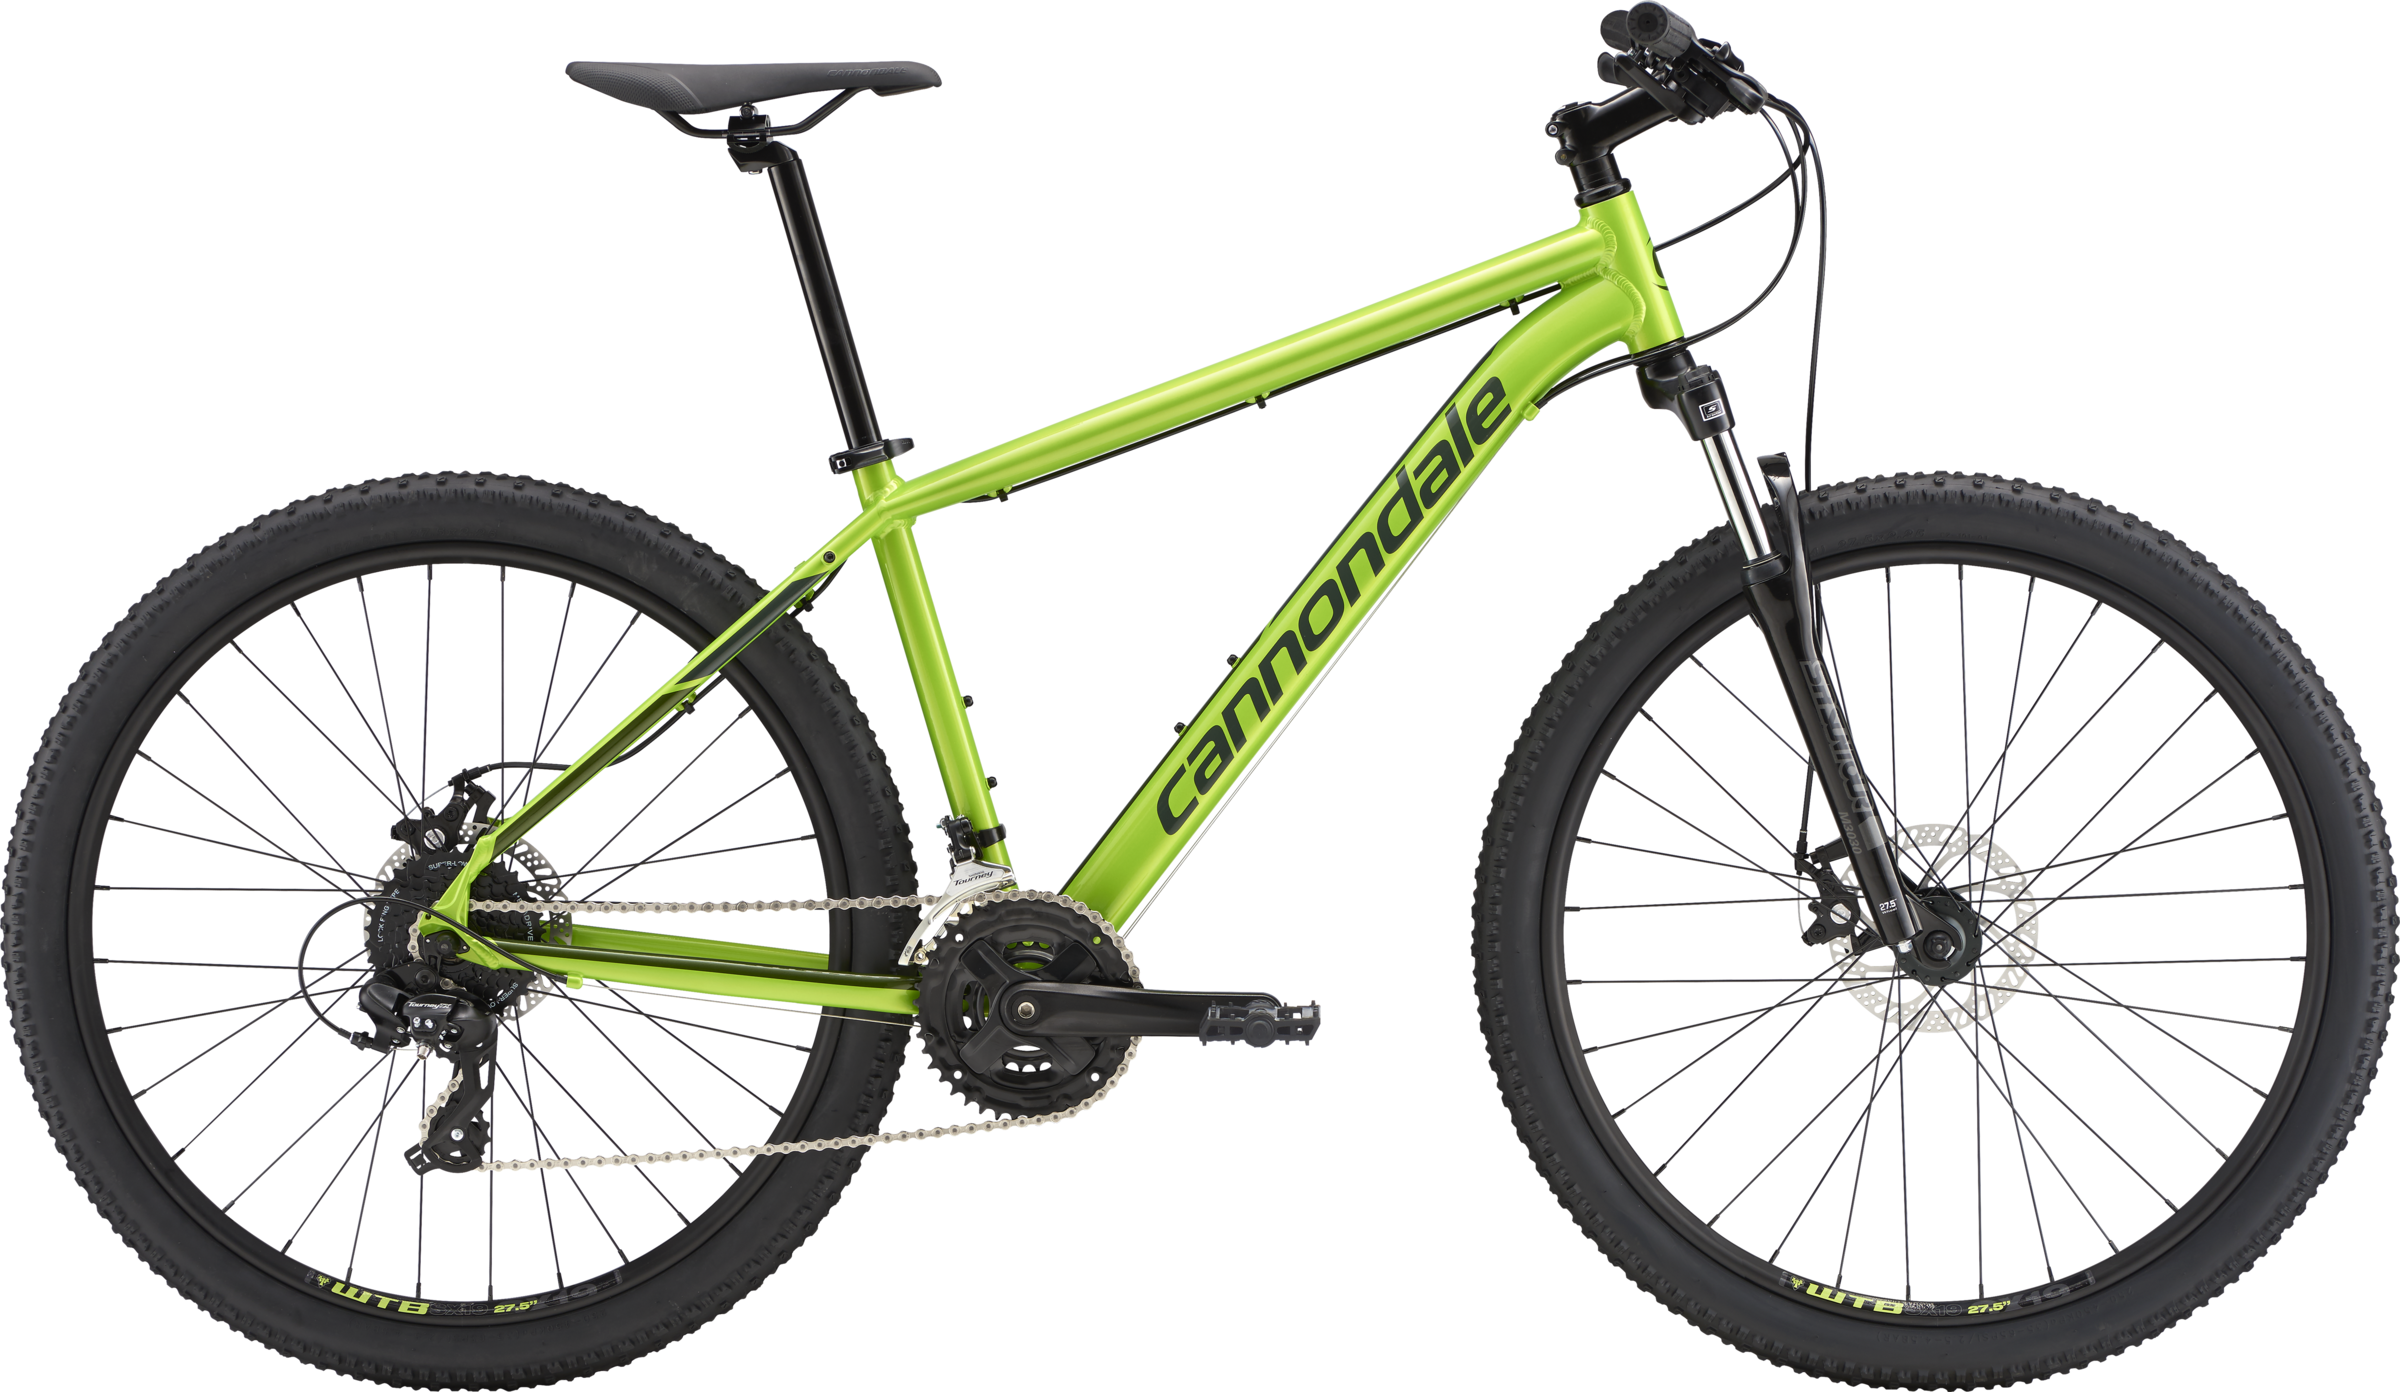 388b79c62a5 Cannondale Catalyst 3 - Philadelphia Cannondale Schwinn GT Haro Fit ...